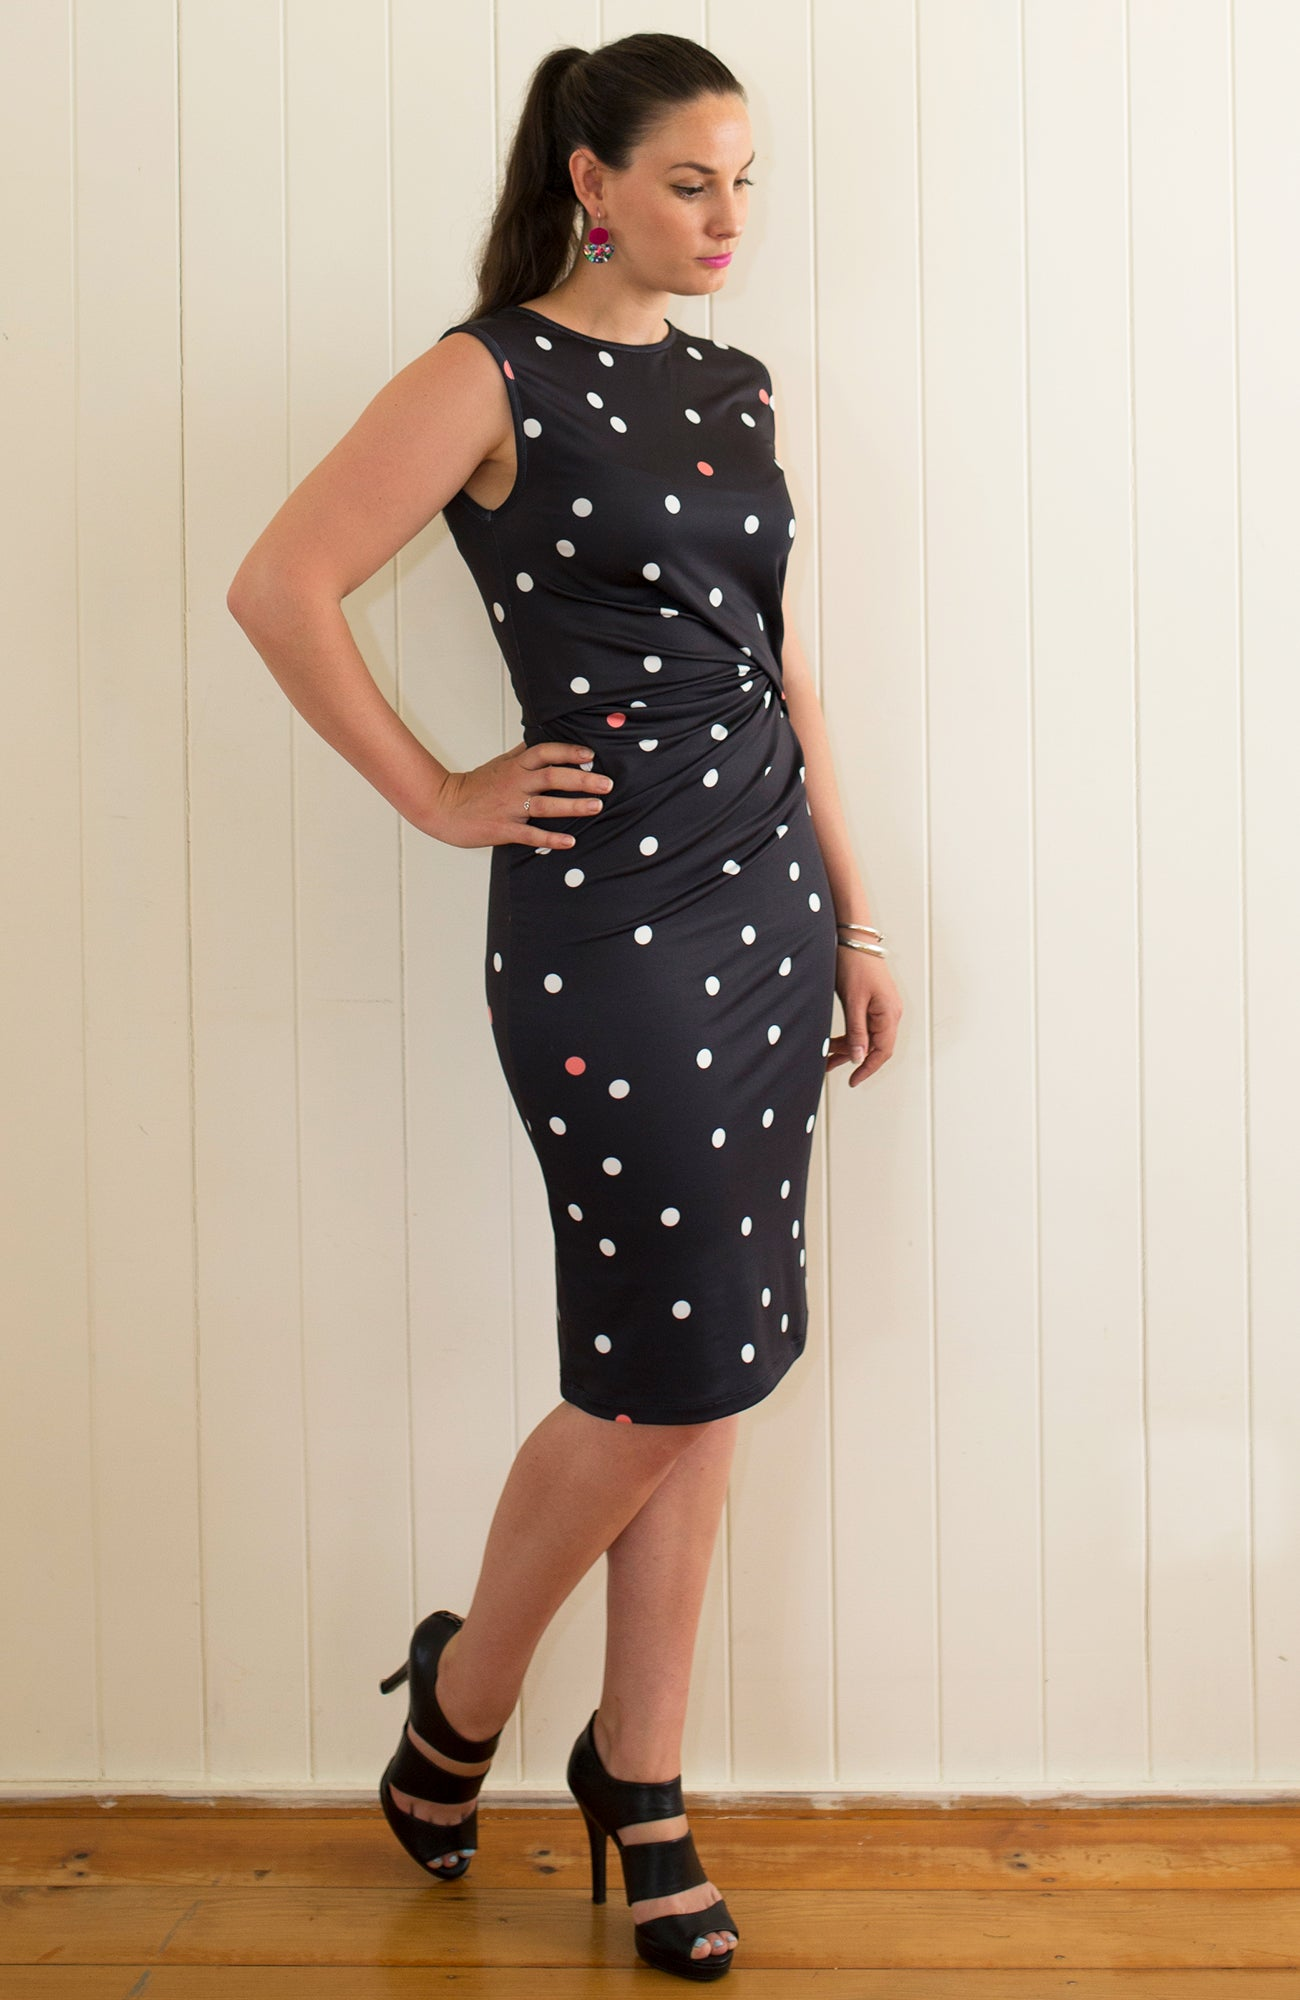 Noir Dress in Black Spot - inBLACK. The Label | Women's Black Dresses